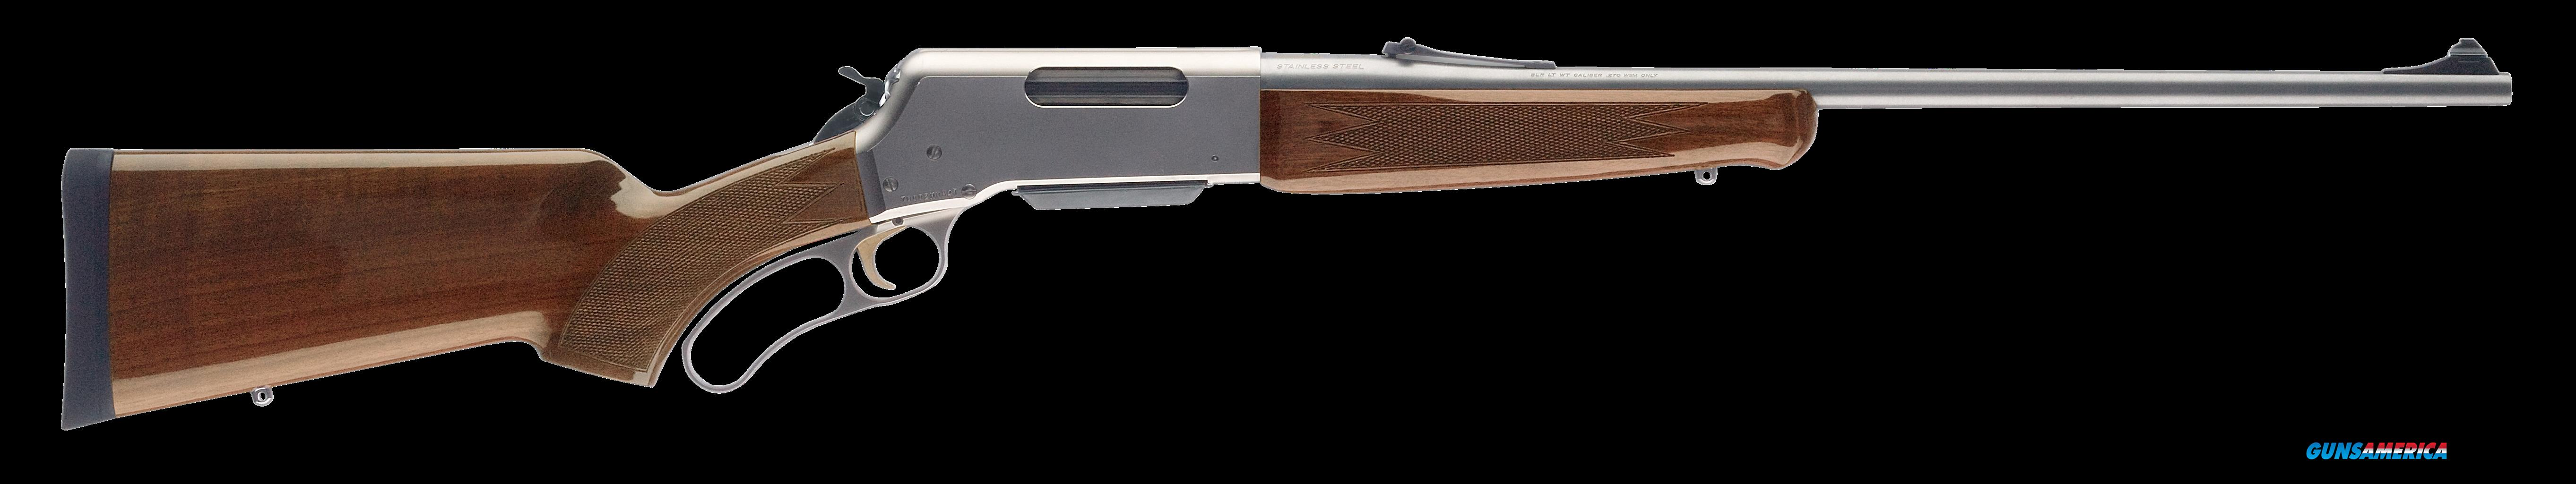 "Browning 034018127 BLR Lightweight Stainless with Pistol Grip Lever 7mm Remington Magnum 24"" 3+1  Guns > Rifles > B Misc Rifles"